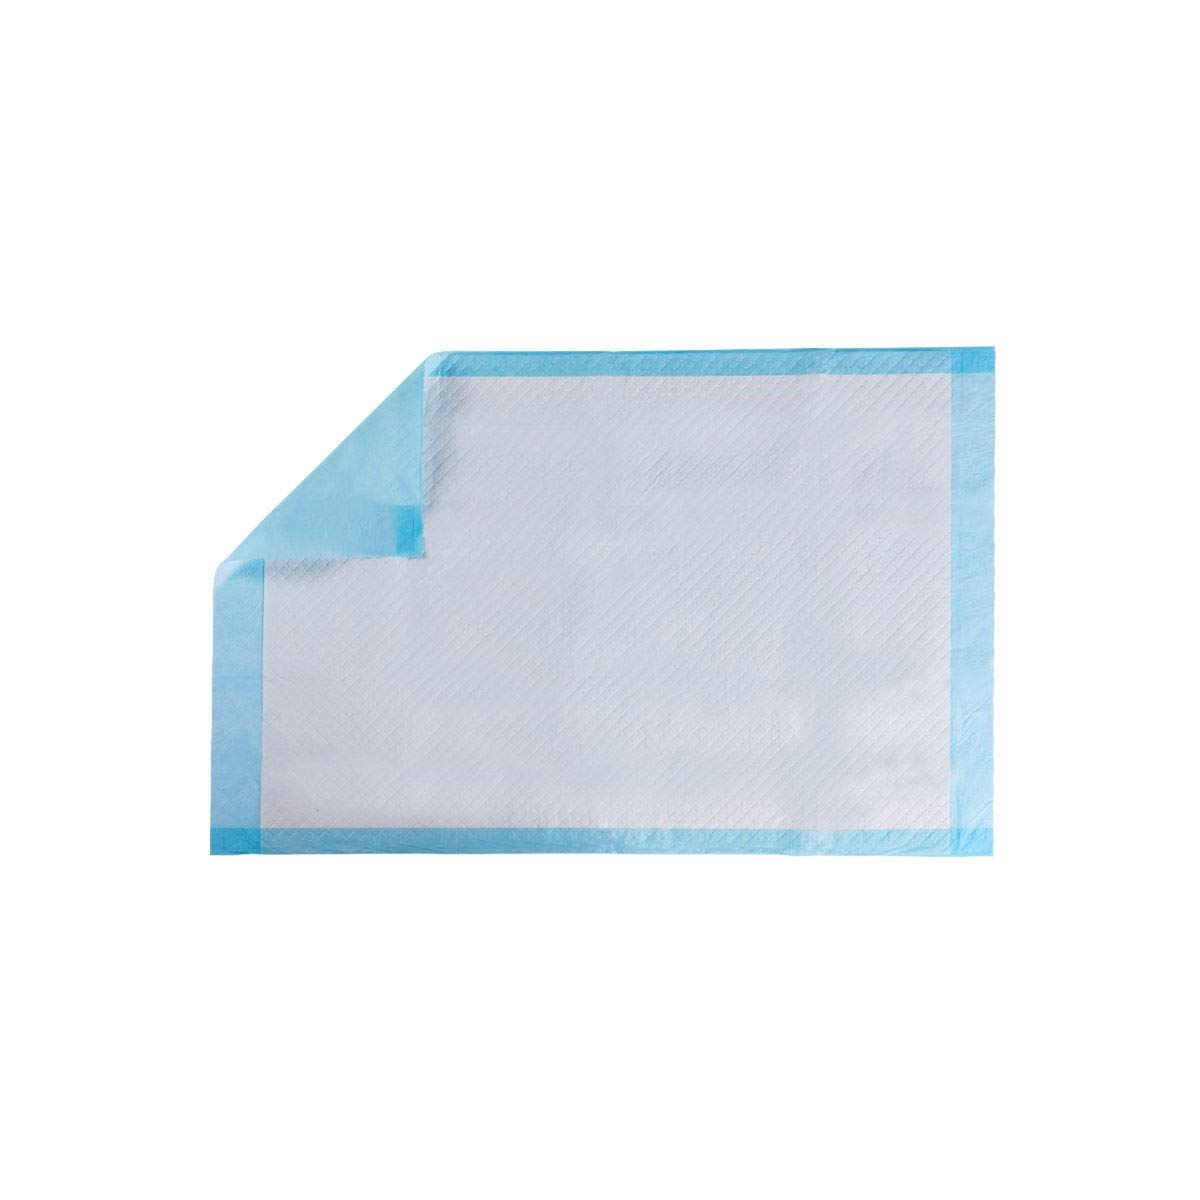 100 pcs 30'' x 36'' Pet Wee Pee Piddle Pad Brand New and Good Product Perfect Size